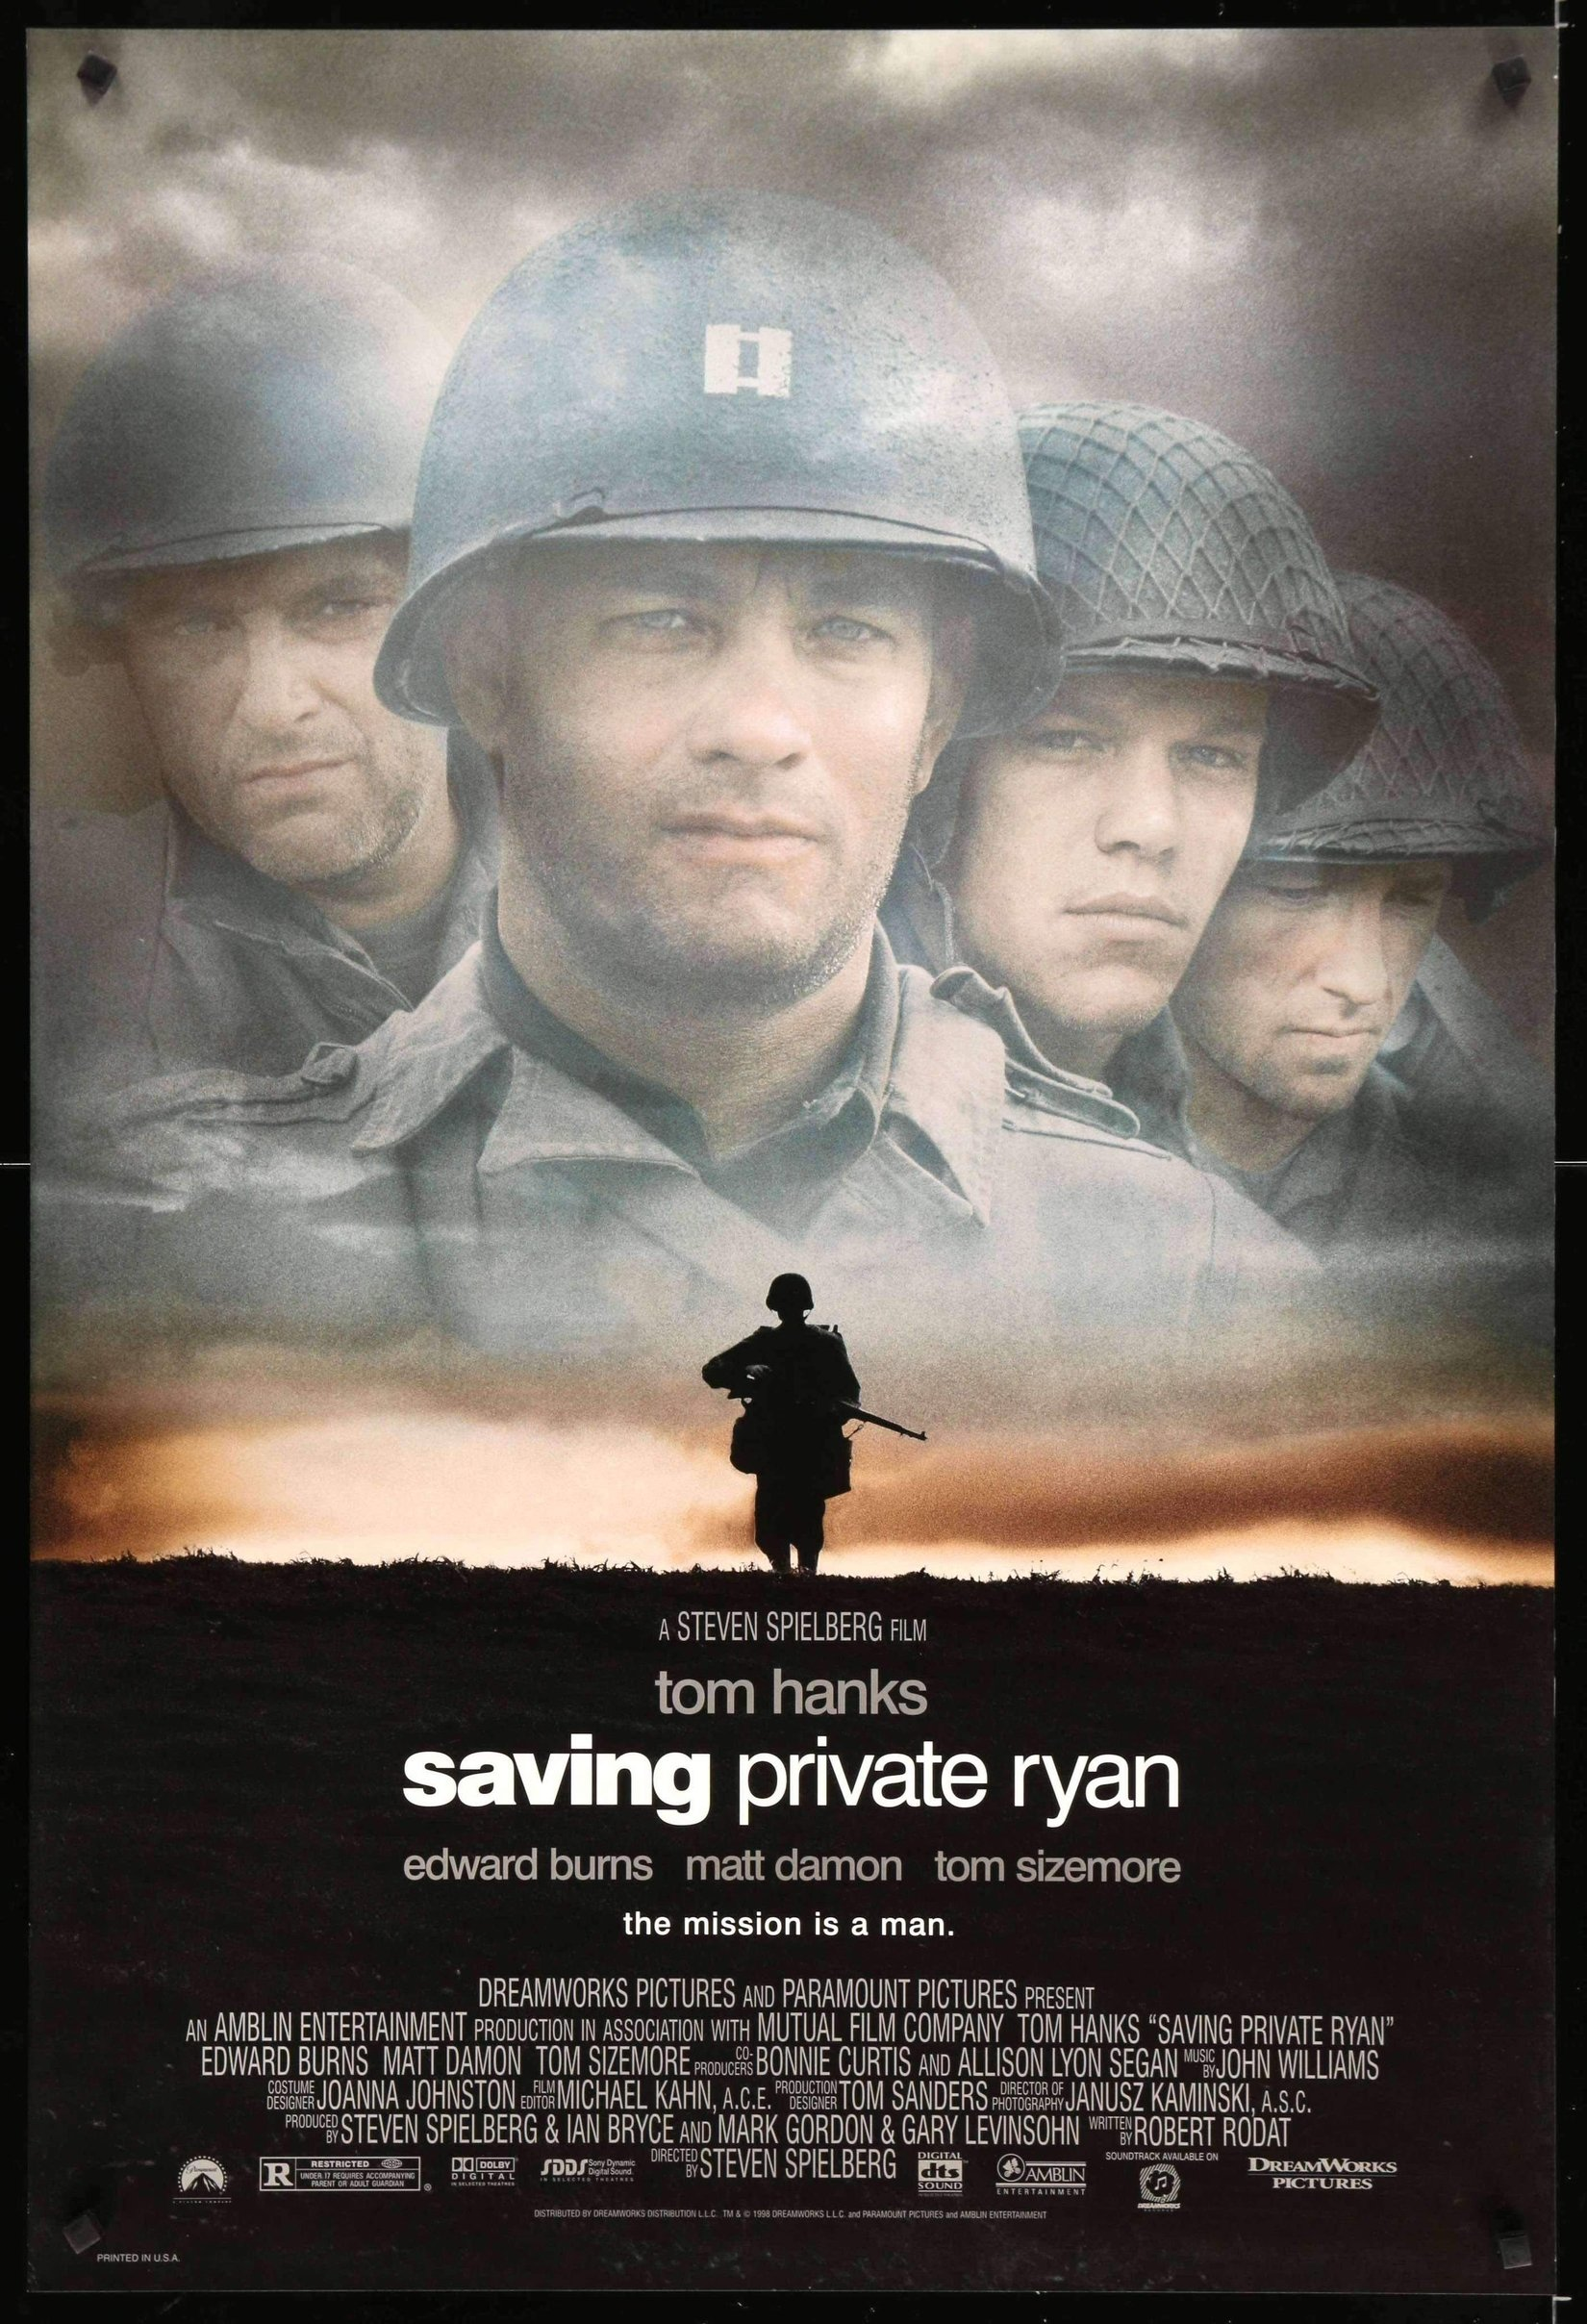 Saving Private Ryan (1998) - Directed by: Steven SpielbergStarring: Tom Hanks, Matt Damon, Tom Sizemore, Edward Burns, Barry PepperRunning Time: 2h 49mRated: RTMM Score: 5 stars out of 5STRENGTHS: EverythingWEAKNESSES: Maaaaaaybe some pacing issues? Maybe?